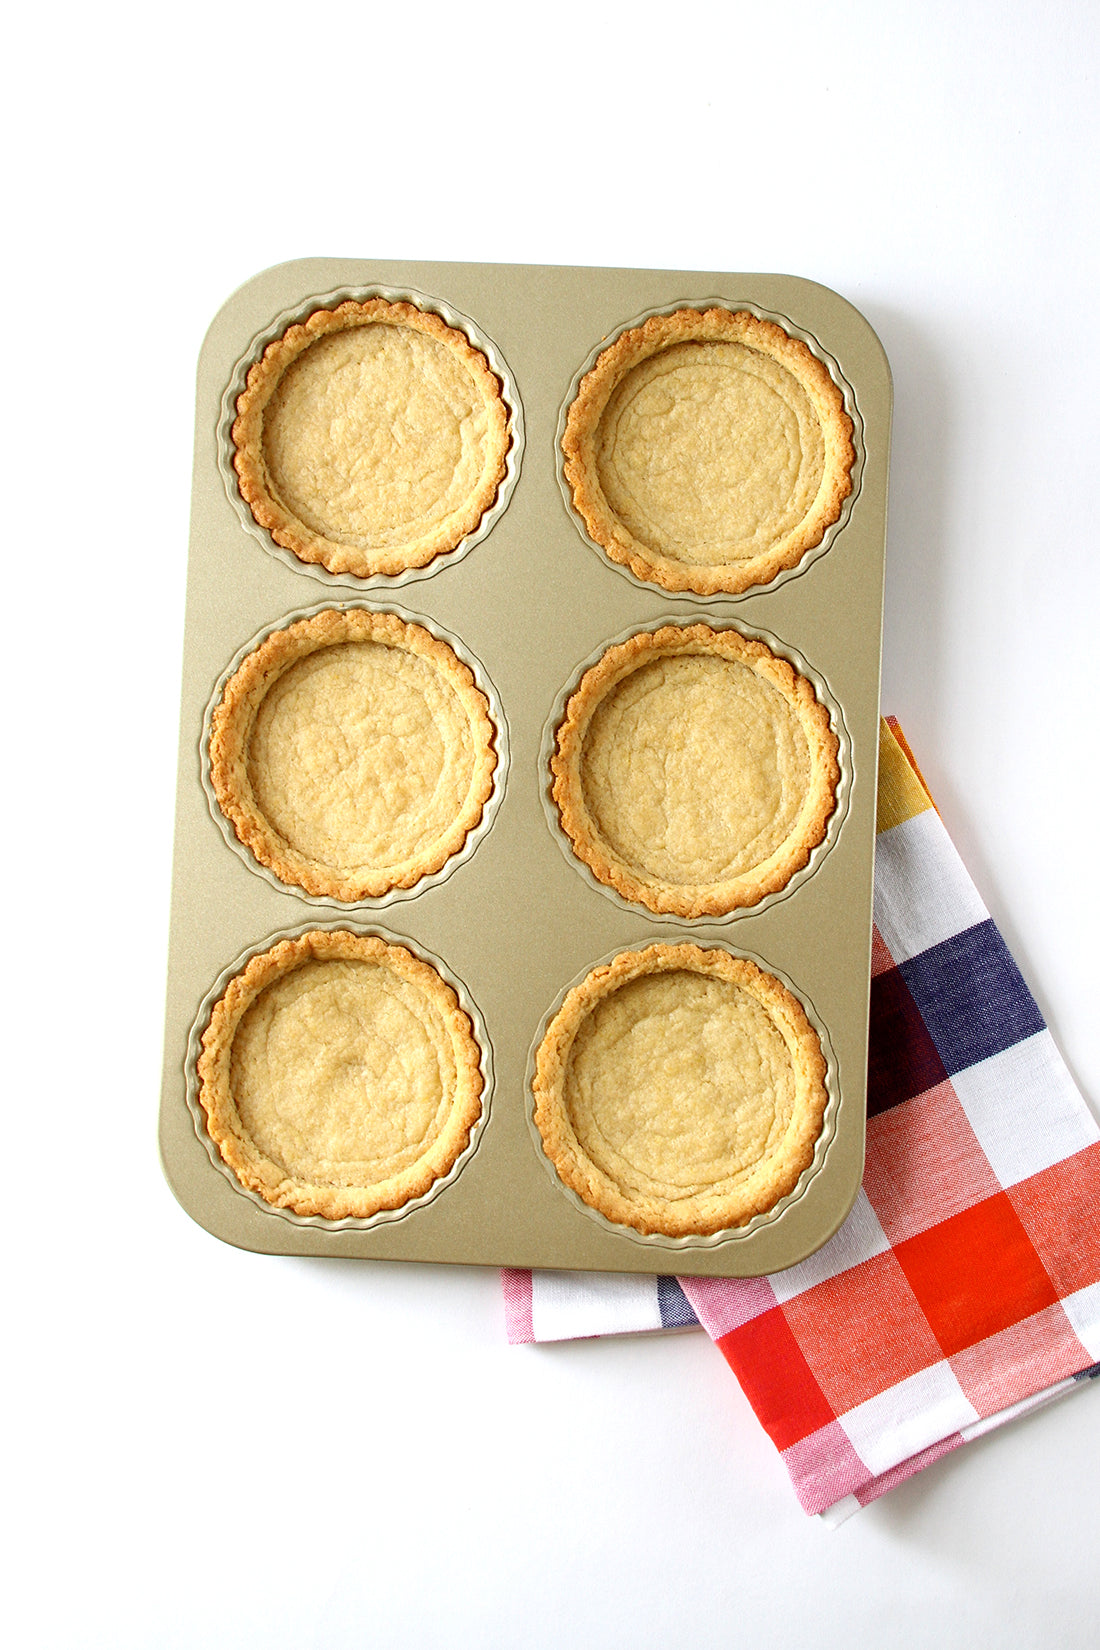 Image of six tart crusts in a baking pan on top of a checkered towel for Miss Jones Baking Co Fruit Cart Tarts recipe